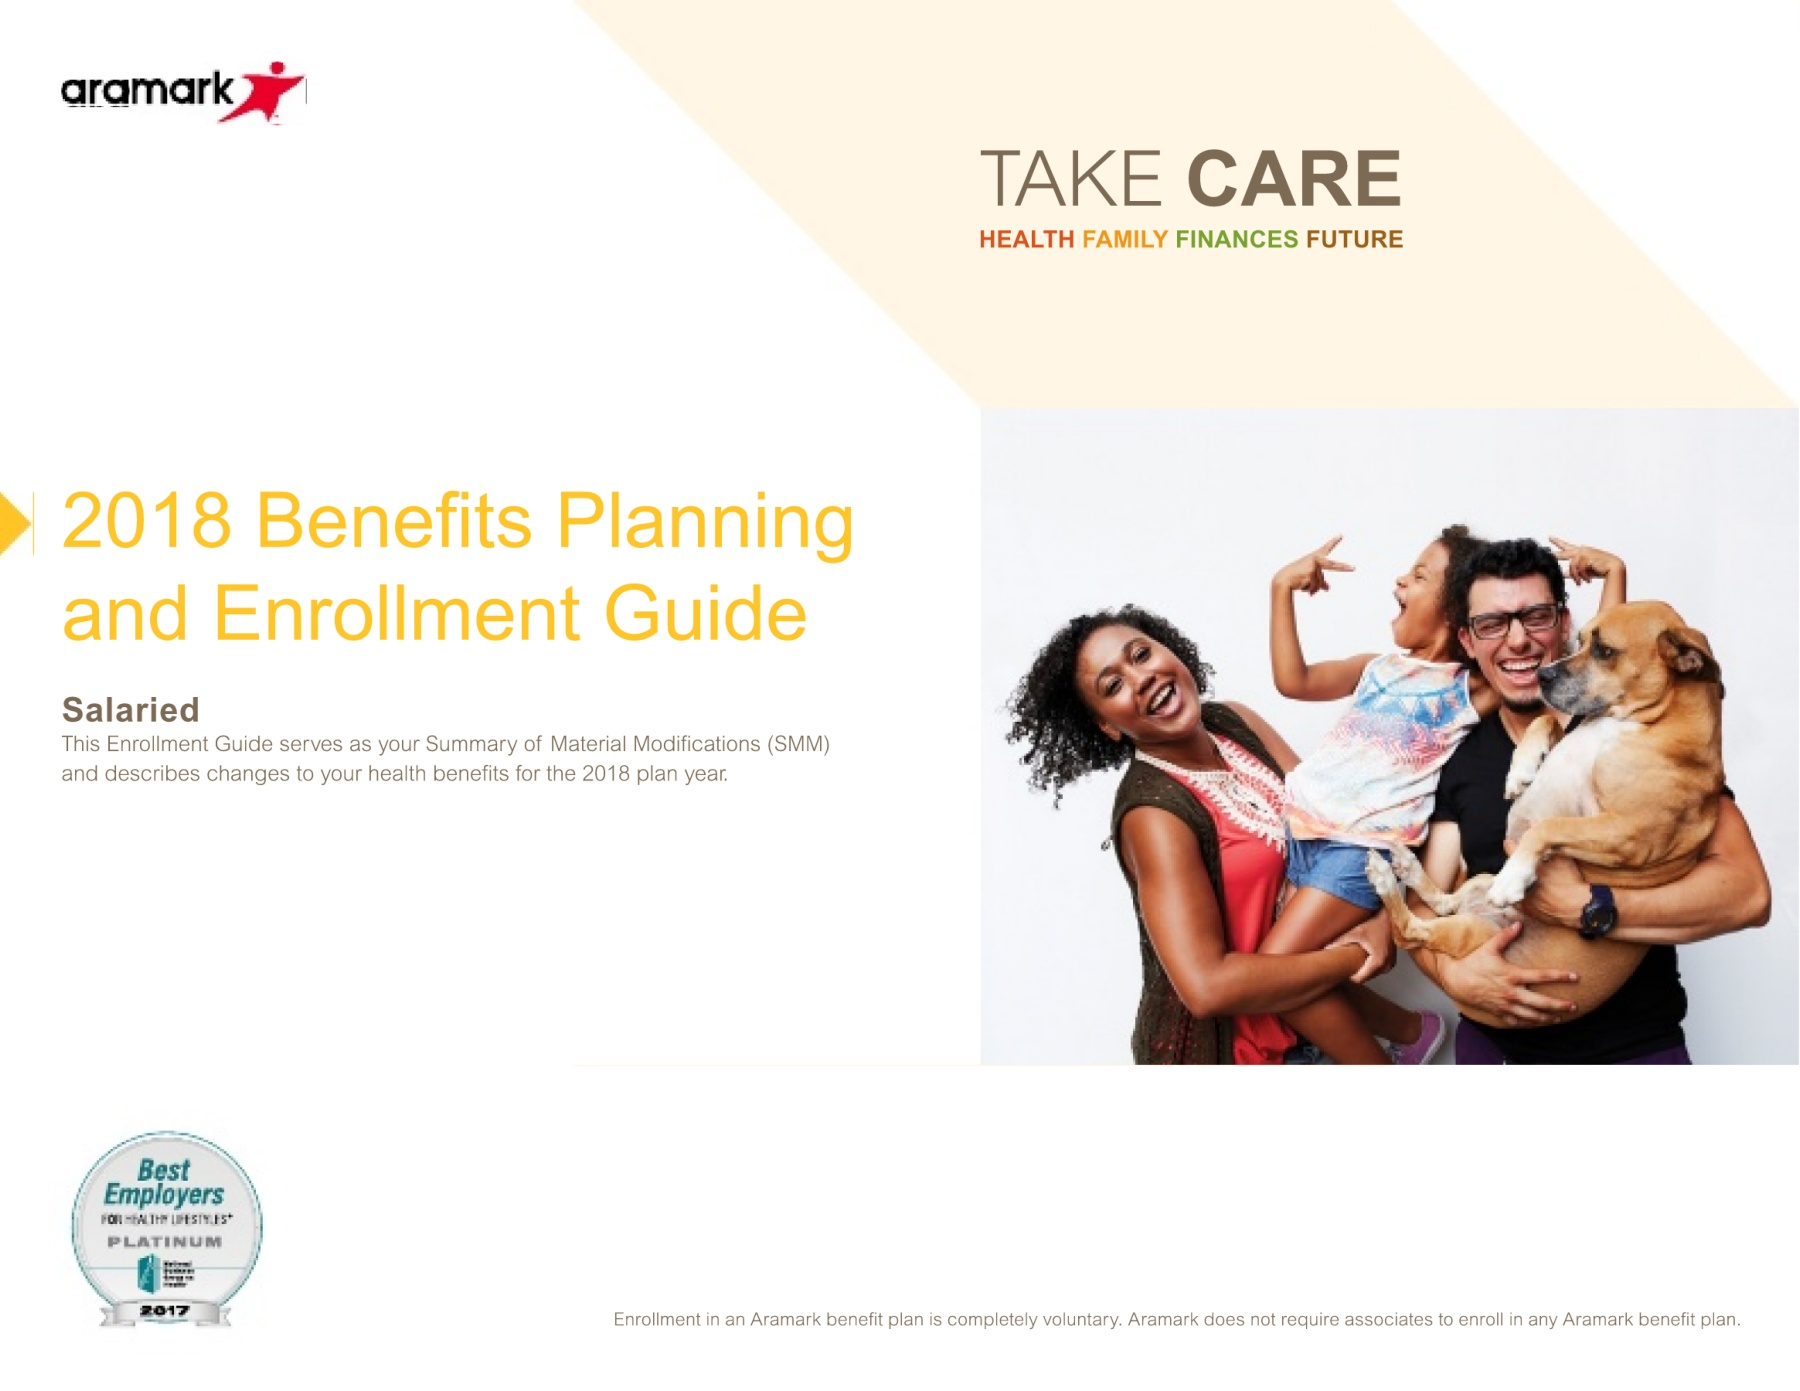 ARA_FFS_Salaried_Enroll_Guide_10_18_17_FINAL Pages 51 - 58 - Text